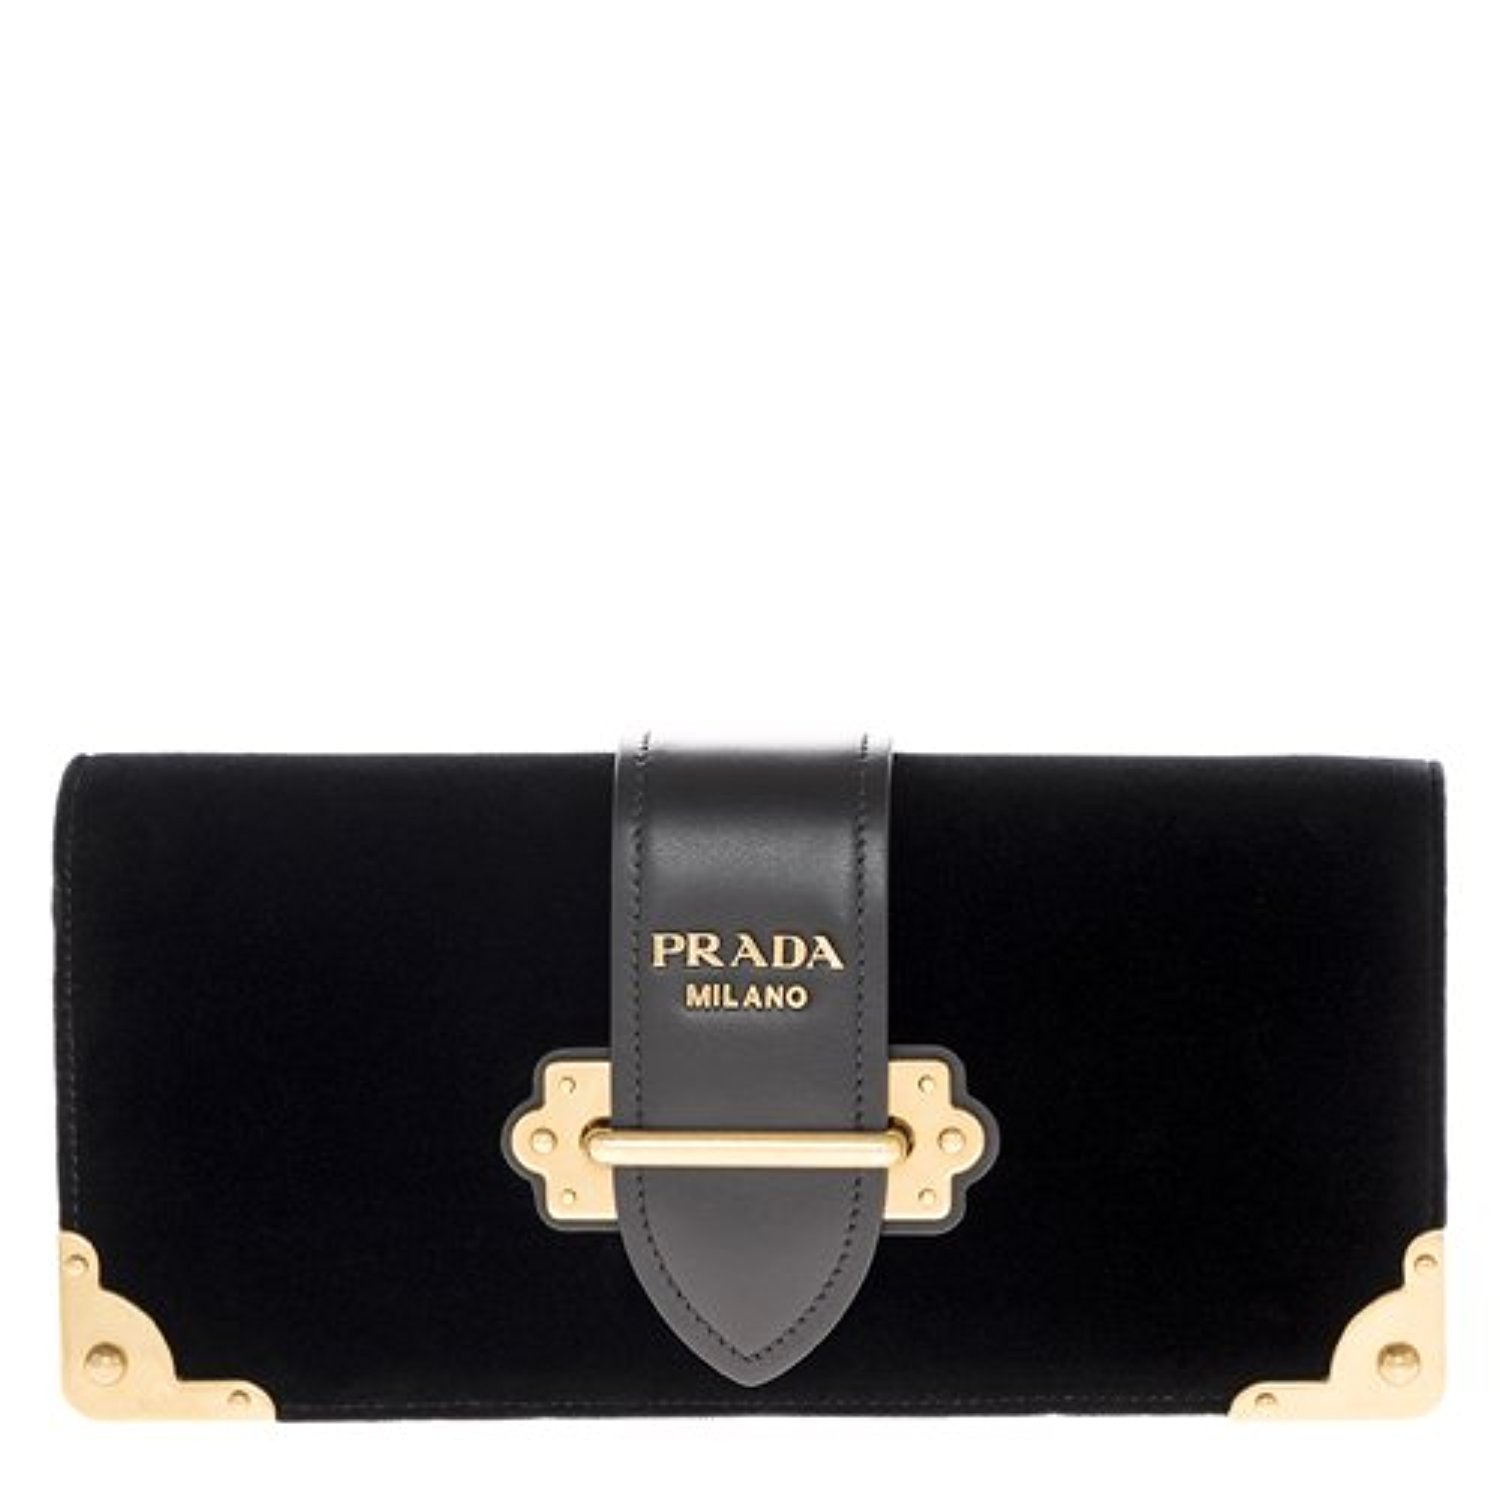 acbdc4a8515a Amazon.com: Prada Women's Cahier Handbag Velvet Black: Clothing